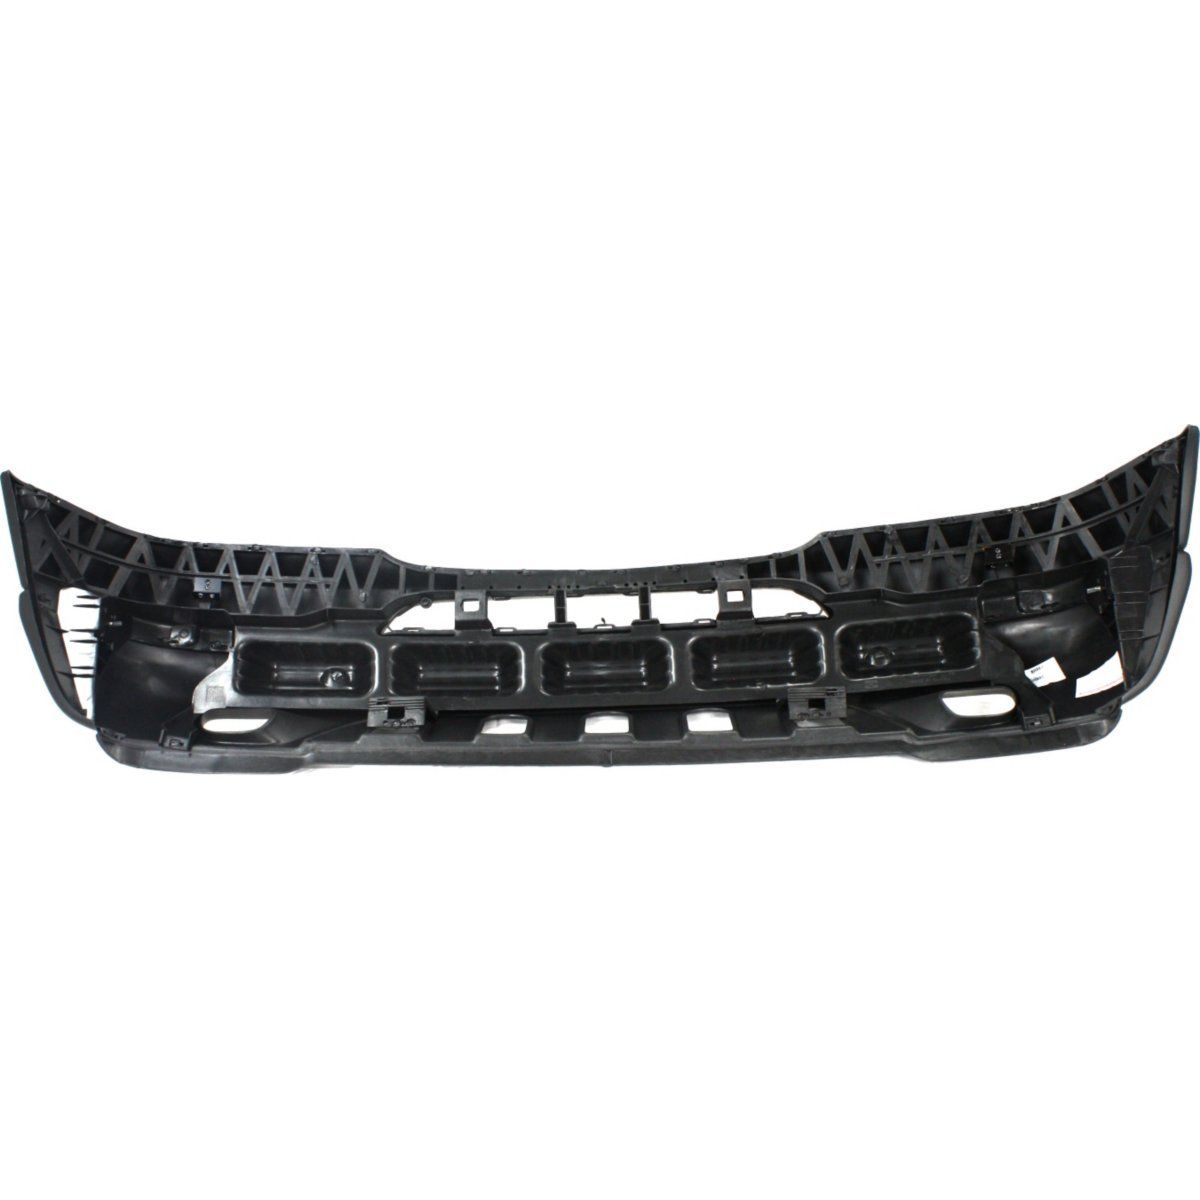 1998-2005 MERCEDES-BENZ ML320/ML430 Front Bumper Cover w/o brush guard  base model Painted to Match